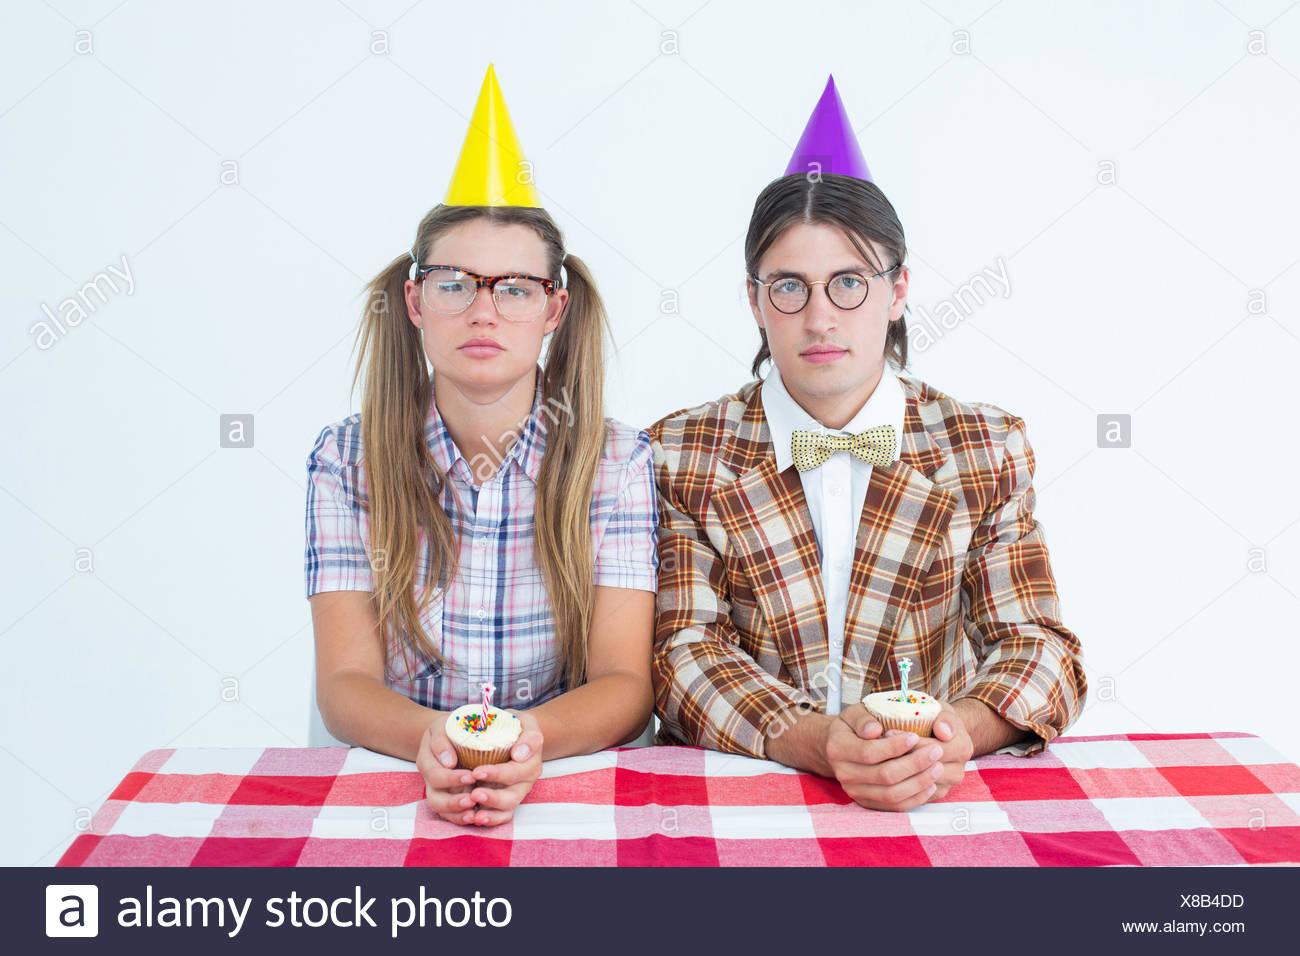 Unsmiling geeky hipsters celebrating birthday - Stock Image